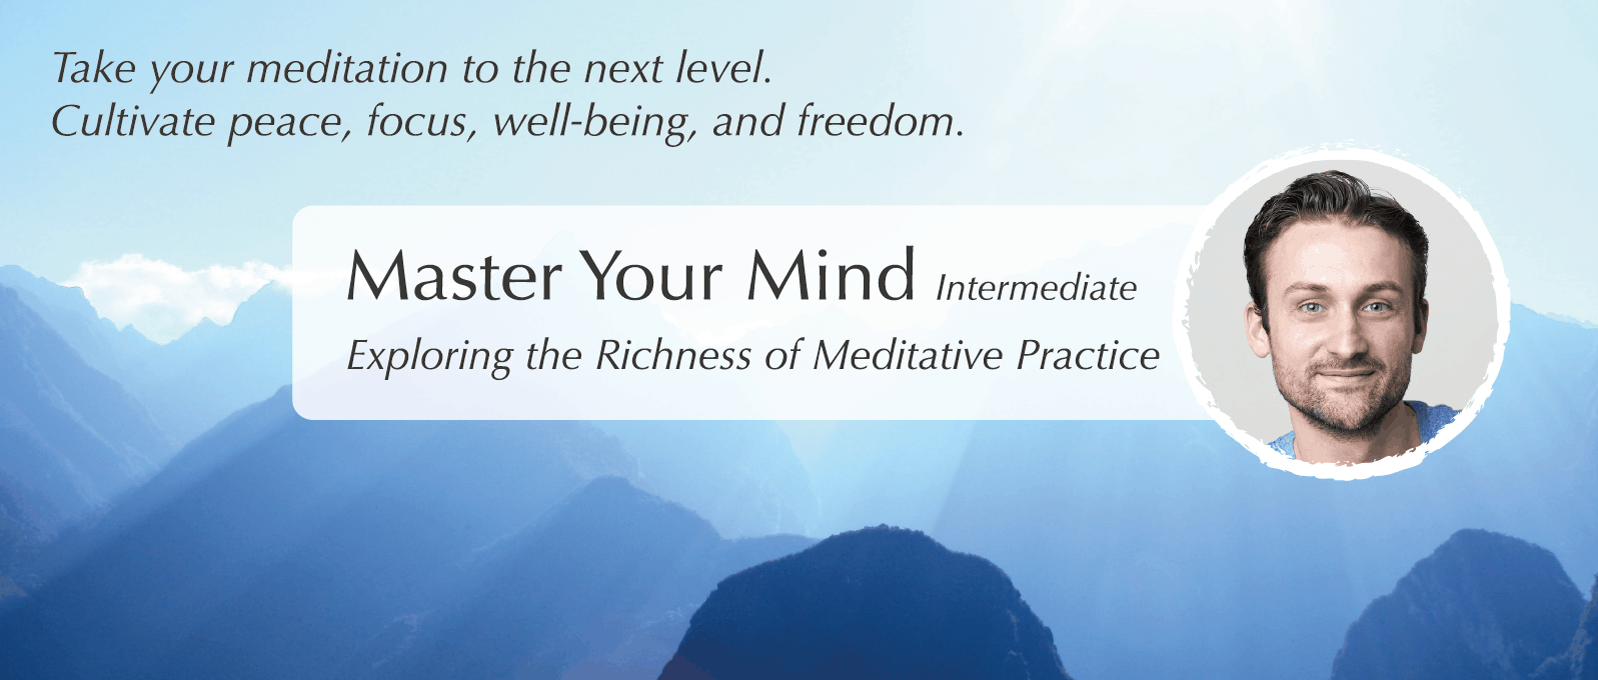 Master Your Mind Intermediate Course